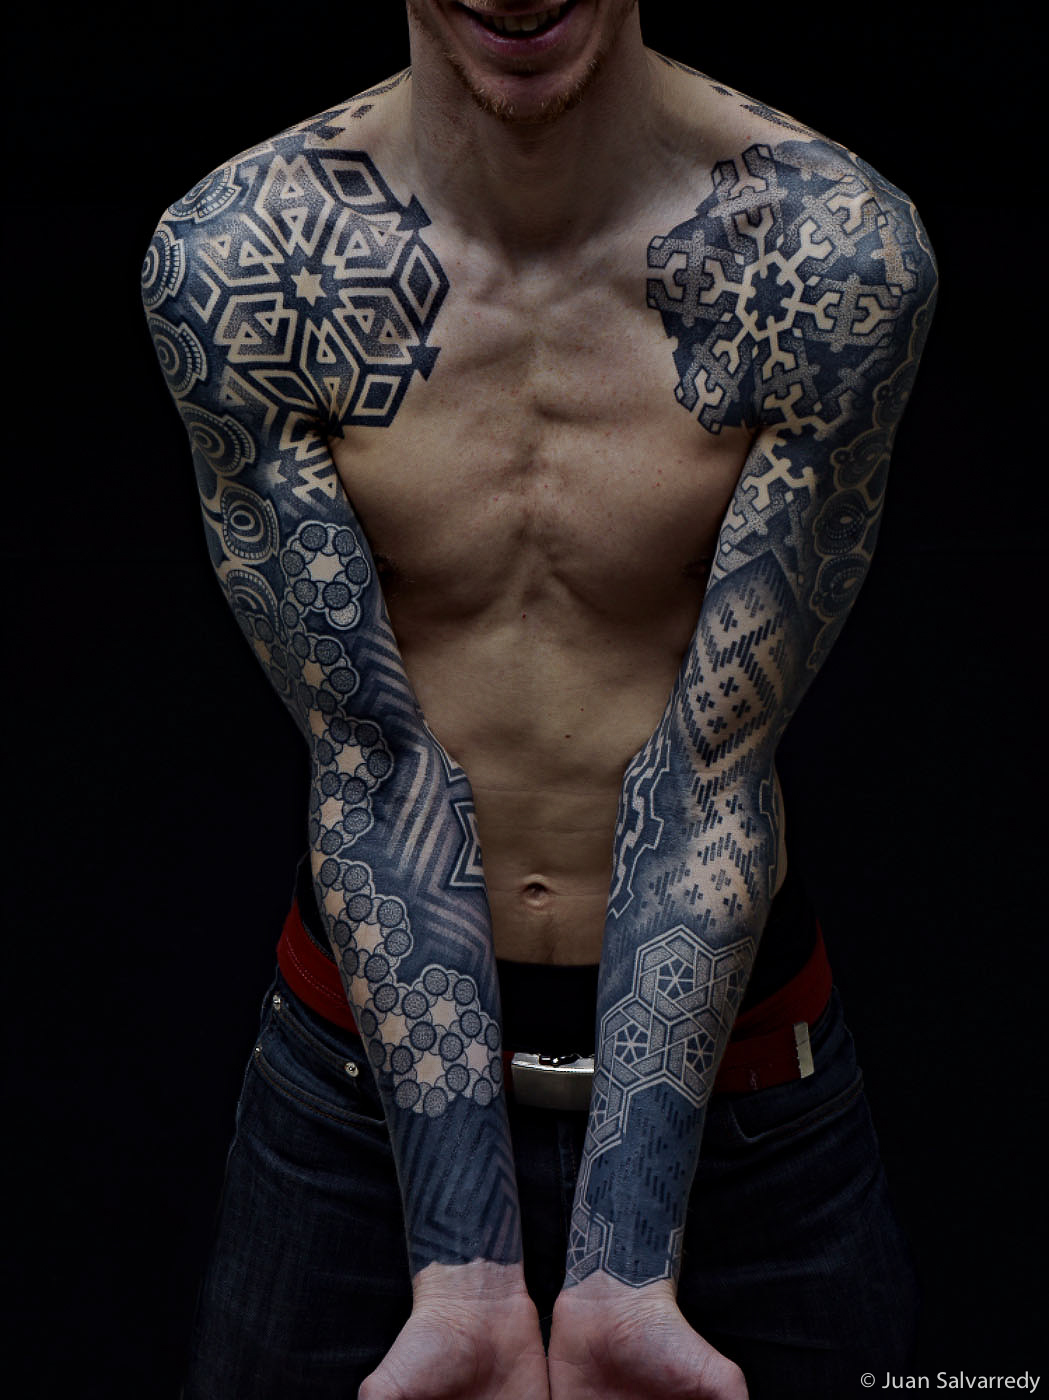 Tattoos Für Den Arm Arm Tattoos For Men ~ Women Fashion And Lifestyles